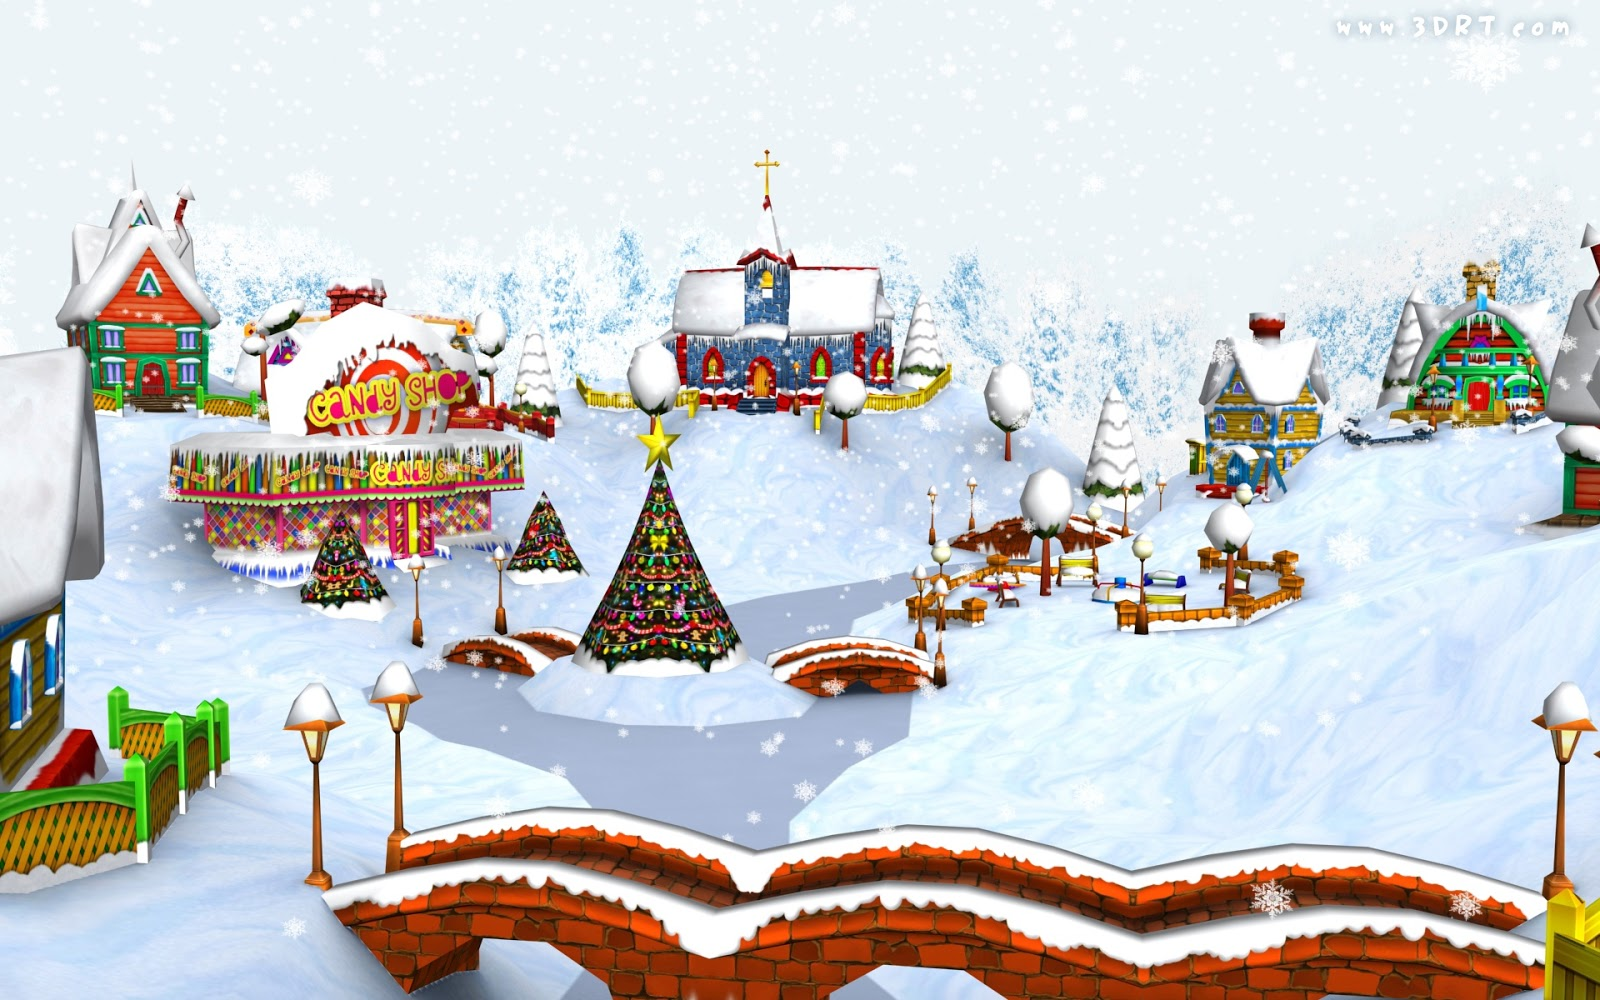 Verse Greetings Card Wallpapers HD Christmas Village Wallpaper 1600x1000